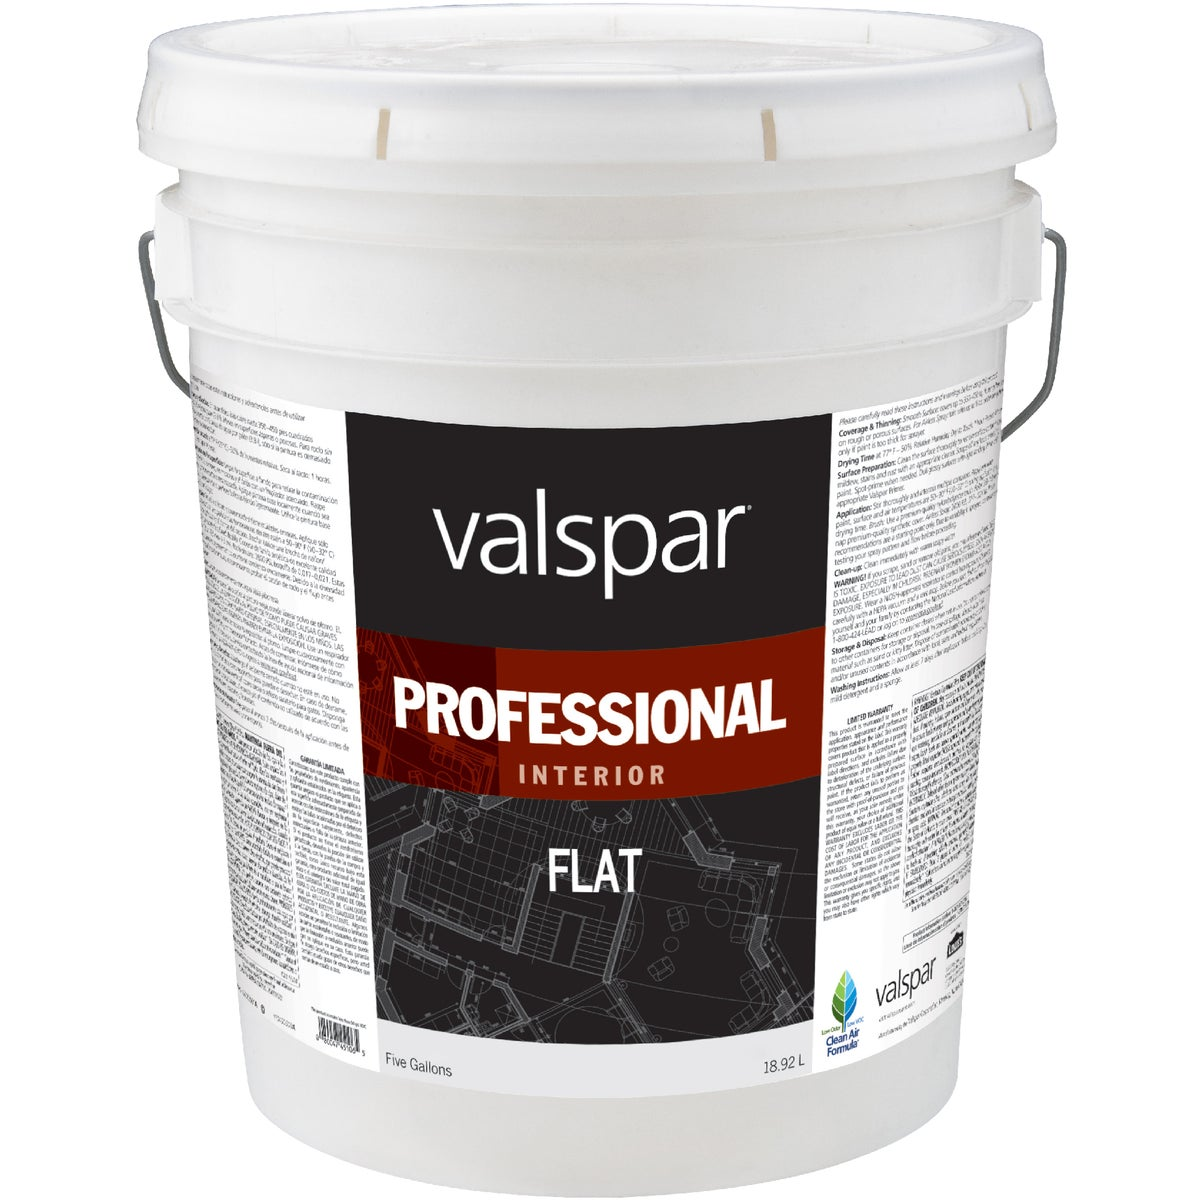 INT FLAT MED BASE PAINT - 045.0011612.008 by Valspar Corp